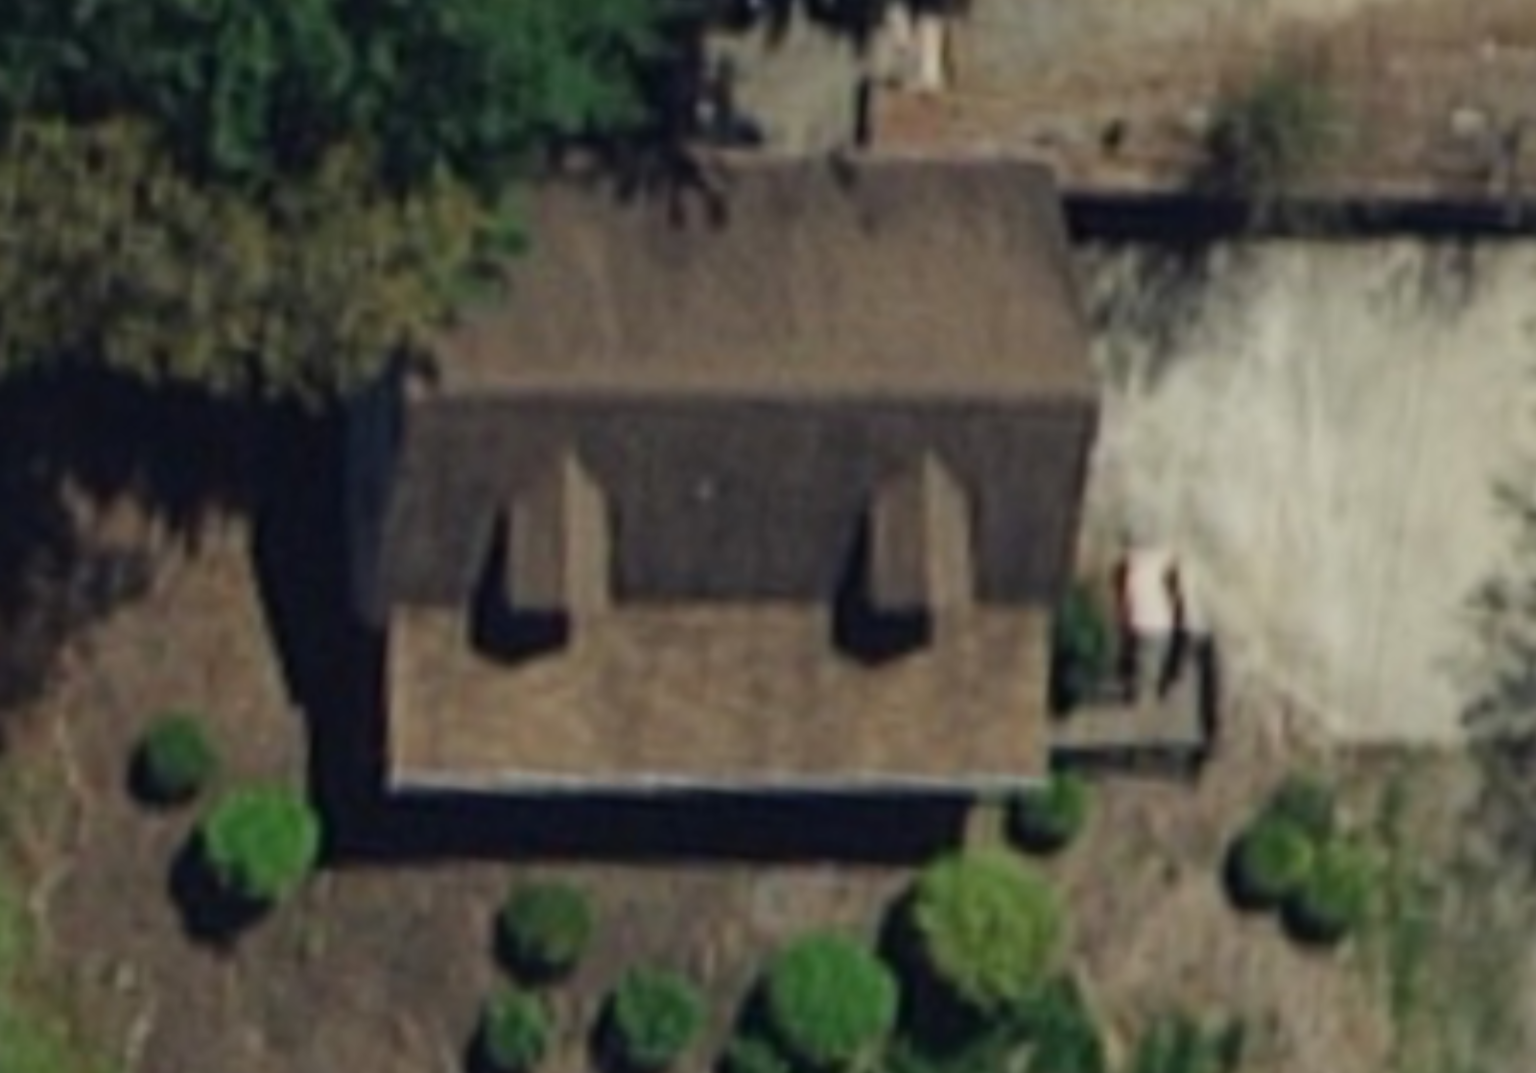 Aerial Image of Roof Replacement